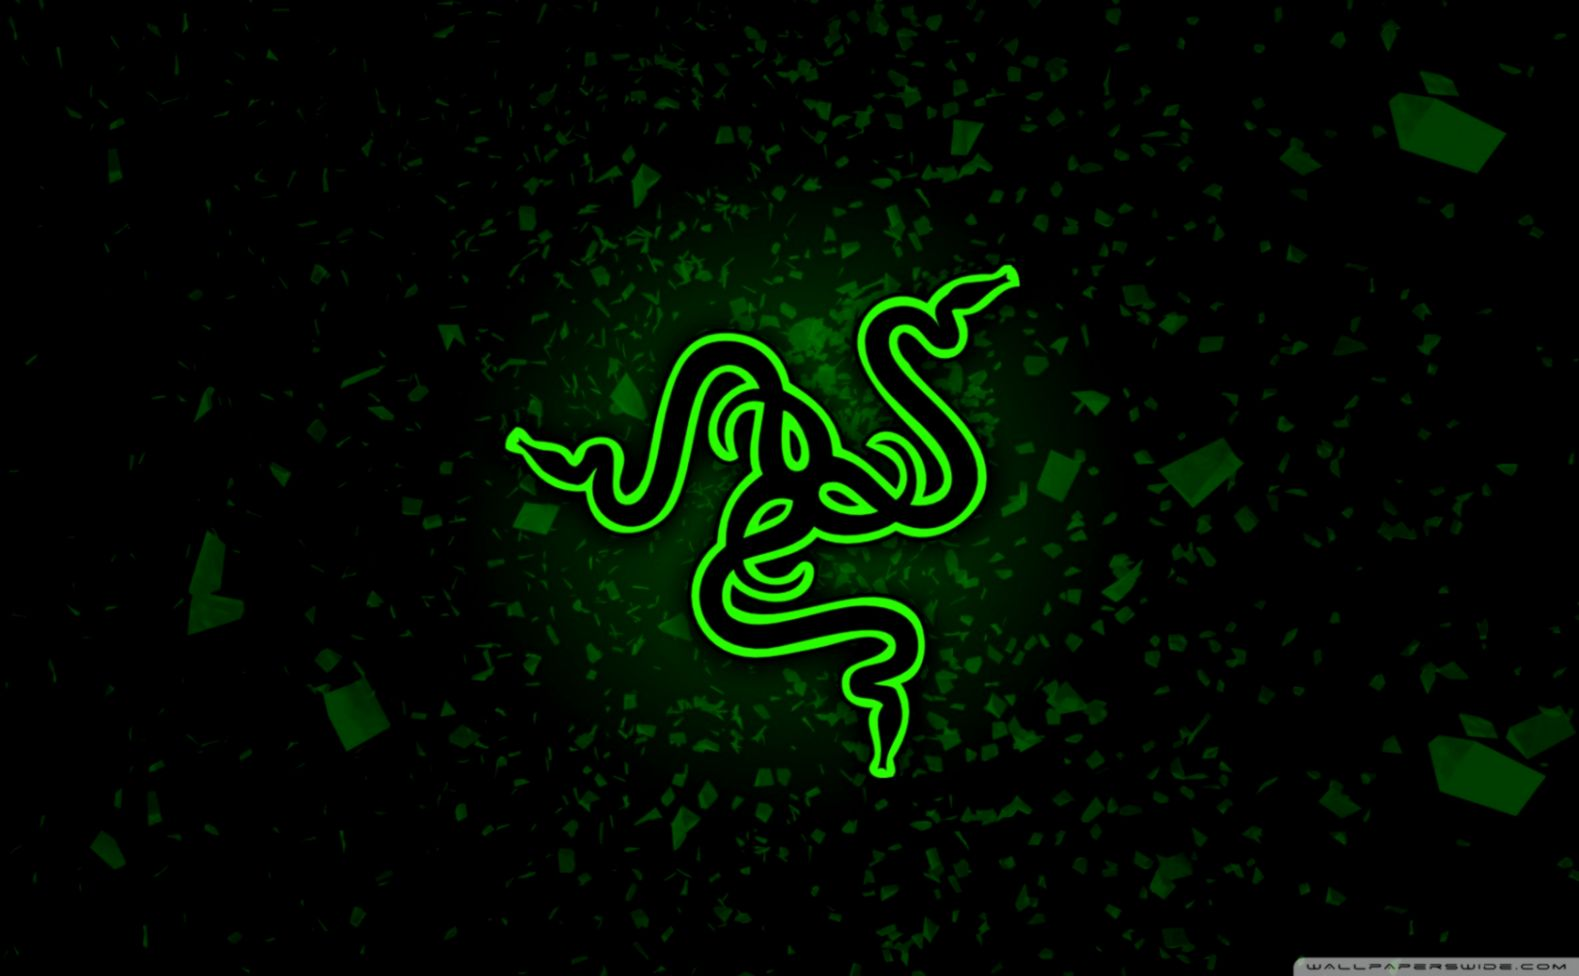 Razer United ❤ 4K HD Desktop Wallpaper for 4K Ultra HD TV • Wide